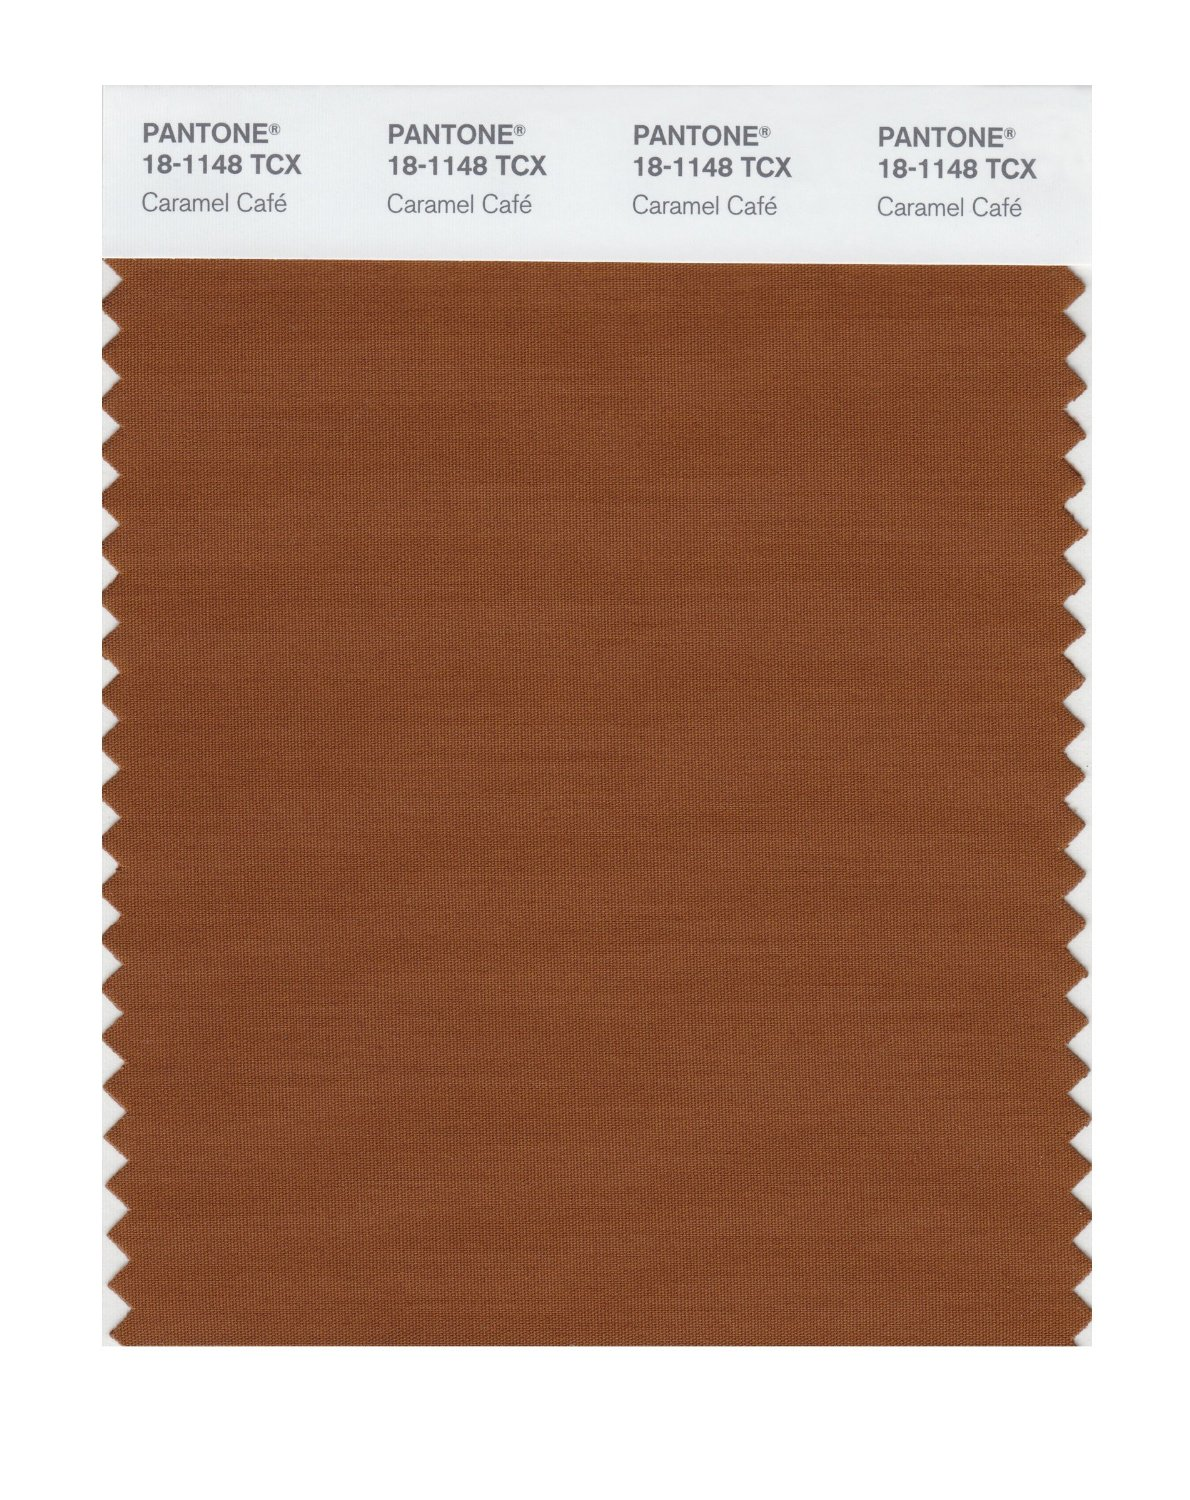 Pantone Smart Swatch 18-1148 Caramel Cafe